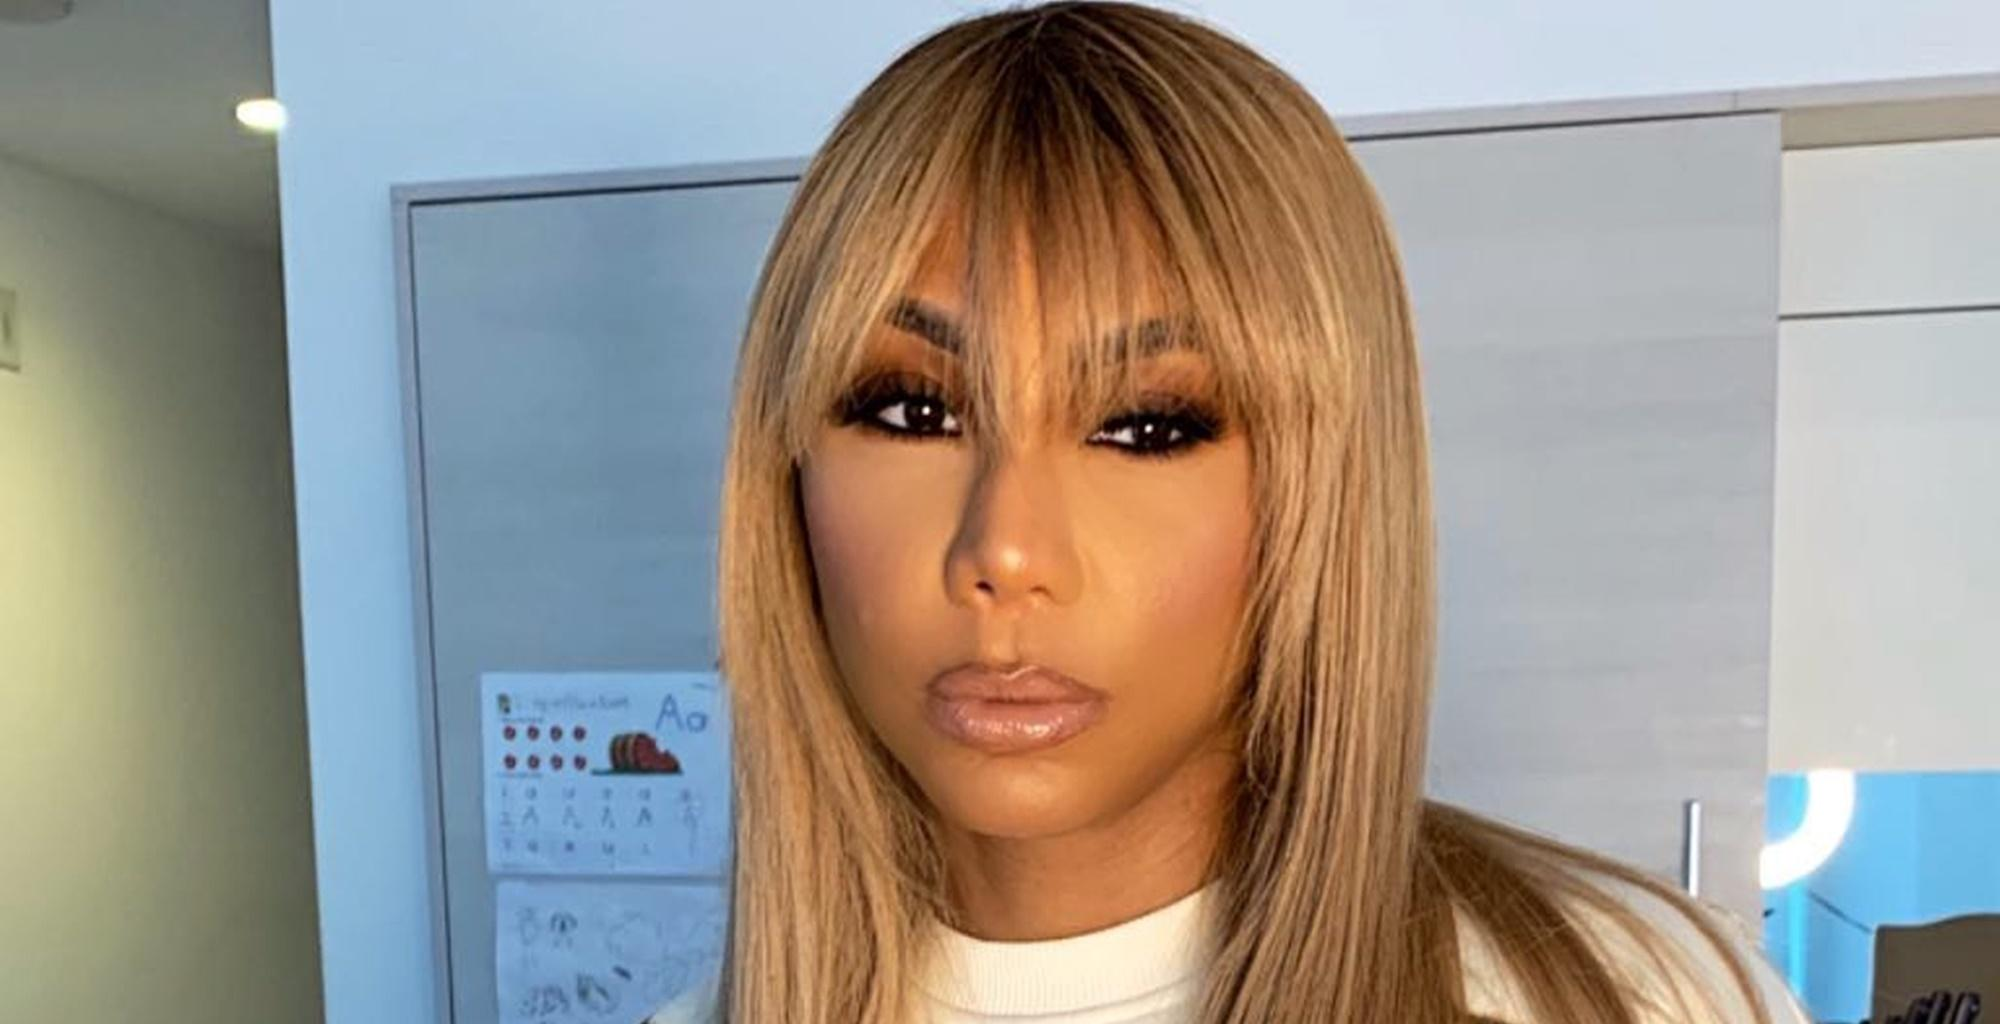 Tamar Braxton Is Too 'Drained' And 'Busy' To Attend Niece Lauren Braxton's Funeral -- Some Say Critics Are Wrong For Attacking Her Griefing Process And She Should Be Allowed To Do As She Pleases